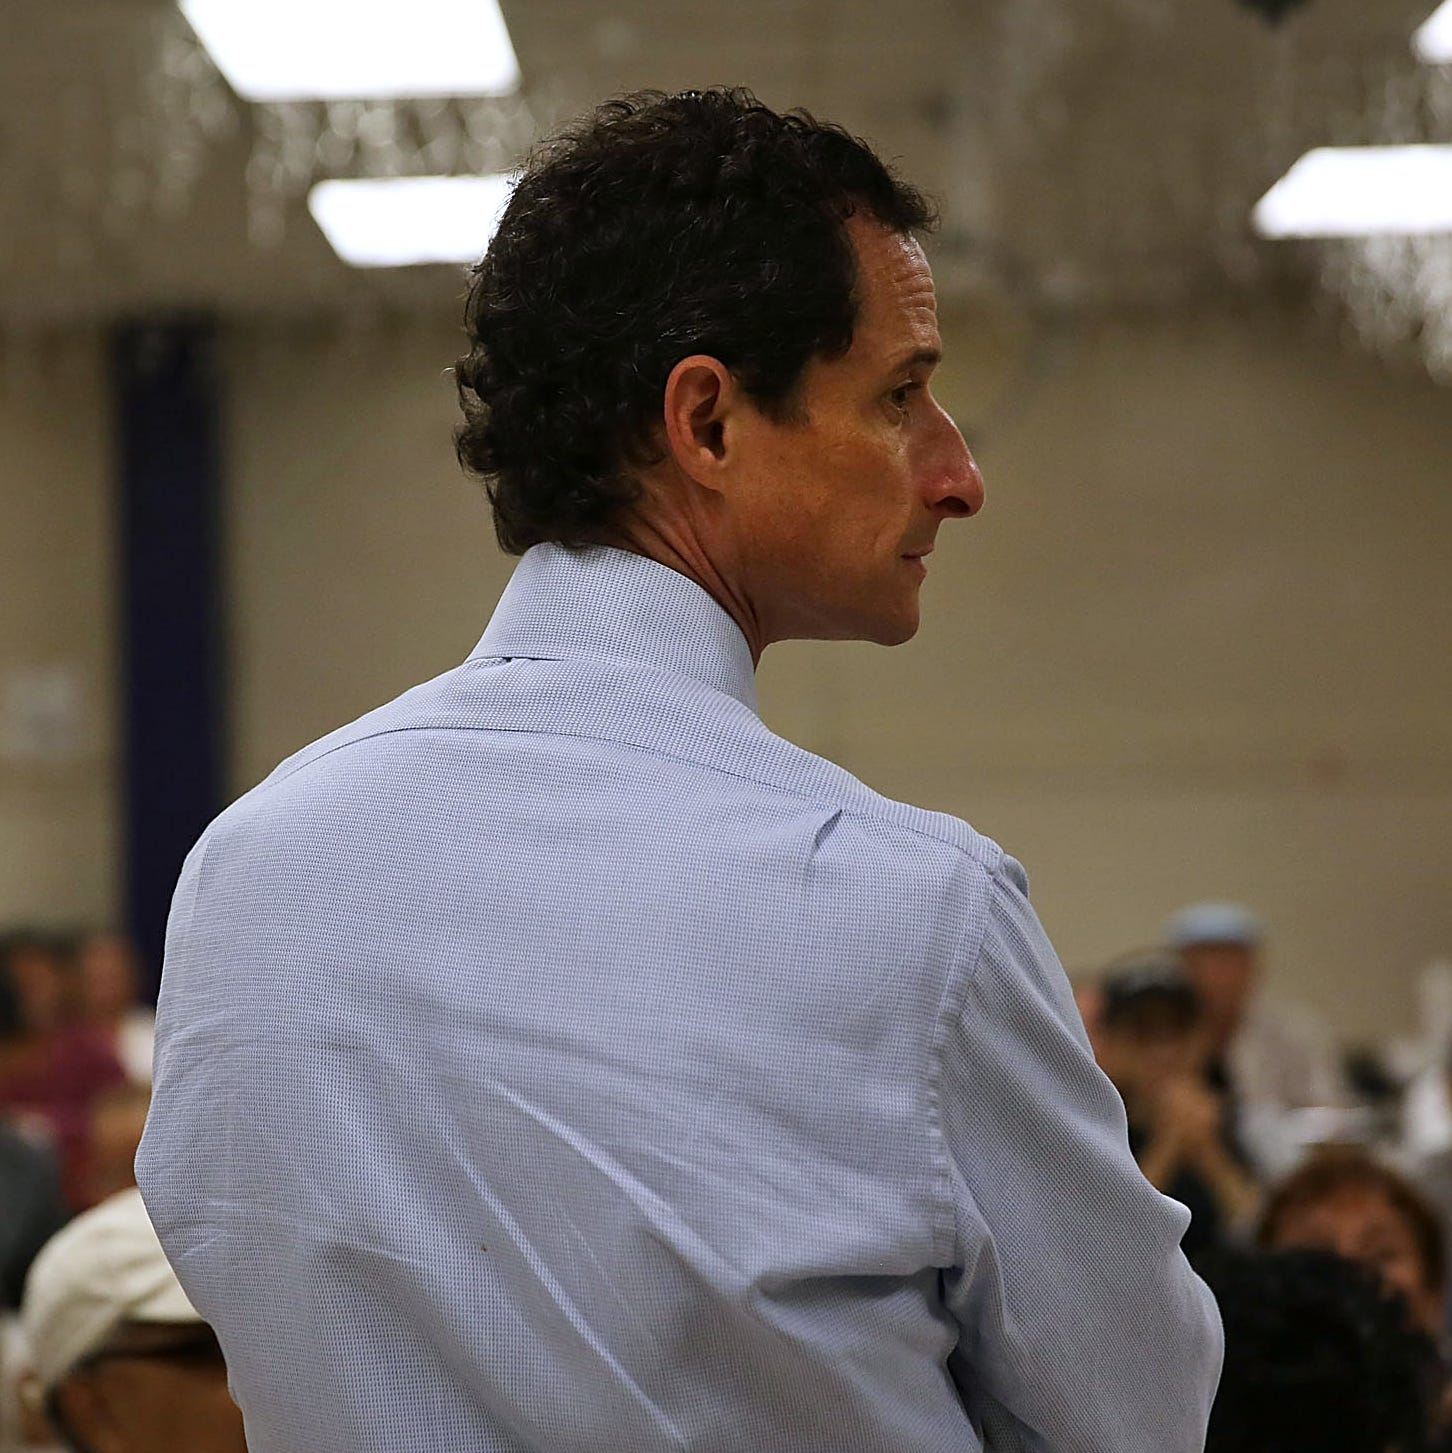 Anthony Weiner, a candidate for New York City mayor, visits a senior center in Manhattan on Tuesday.